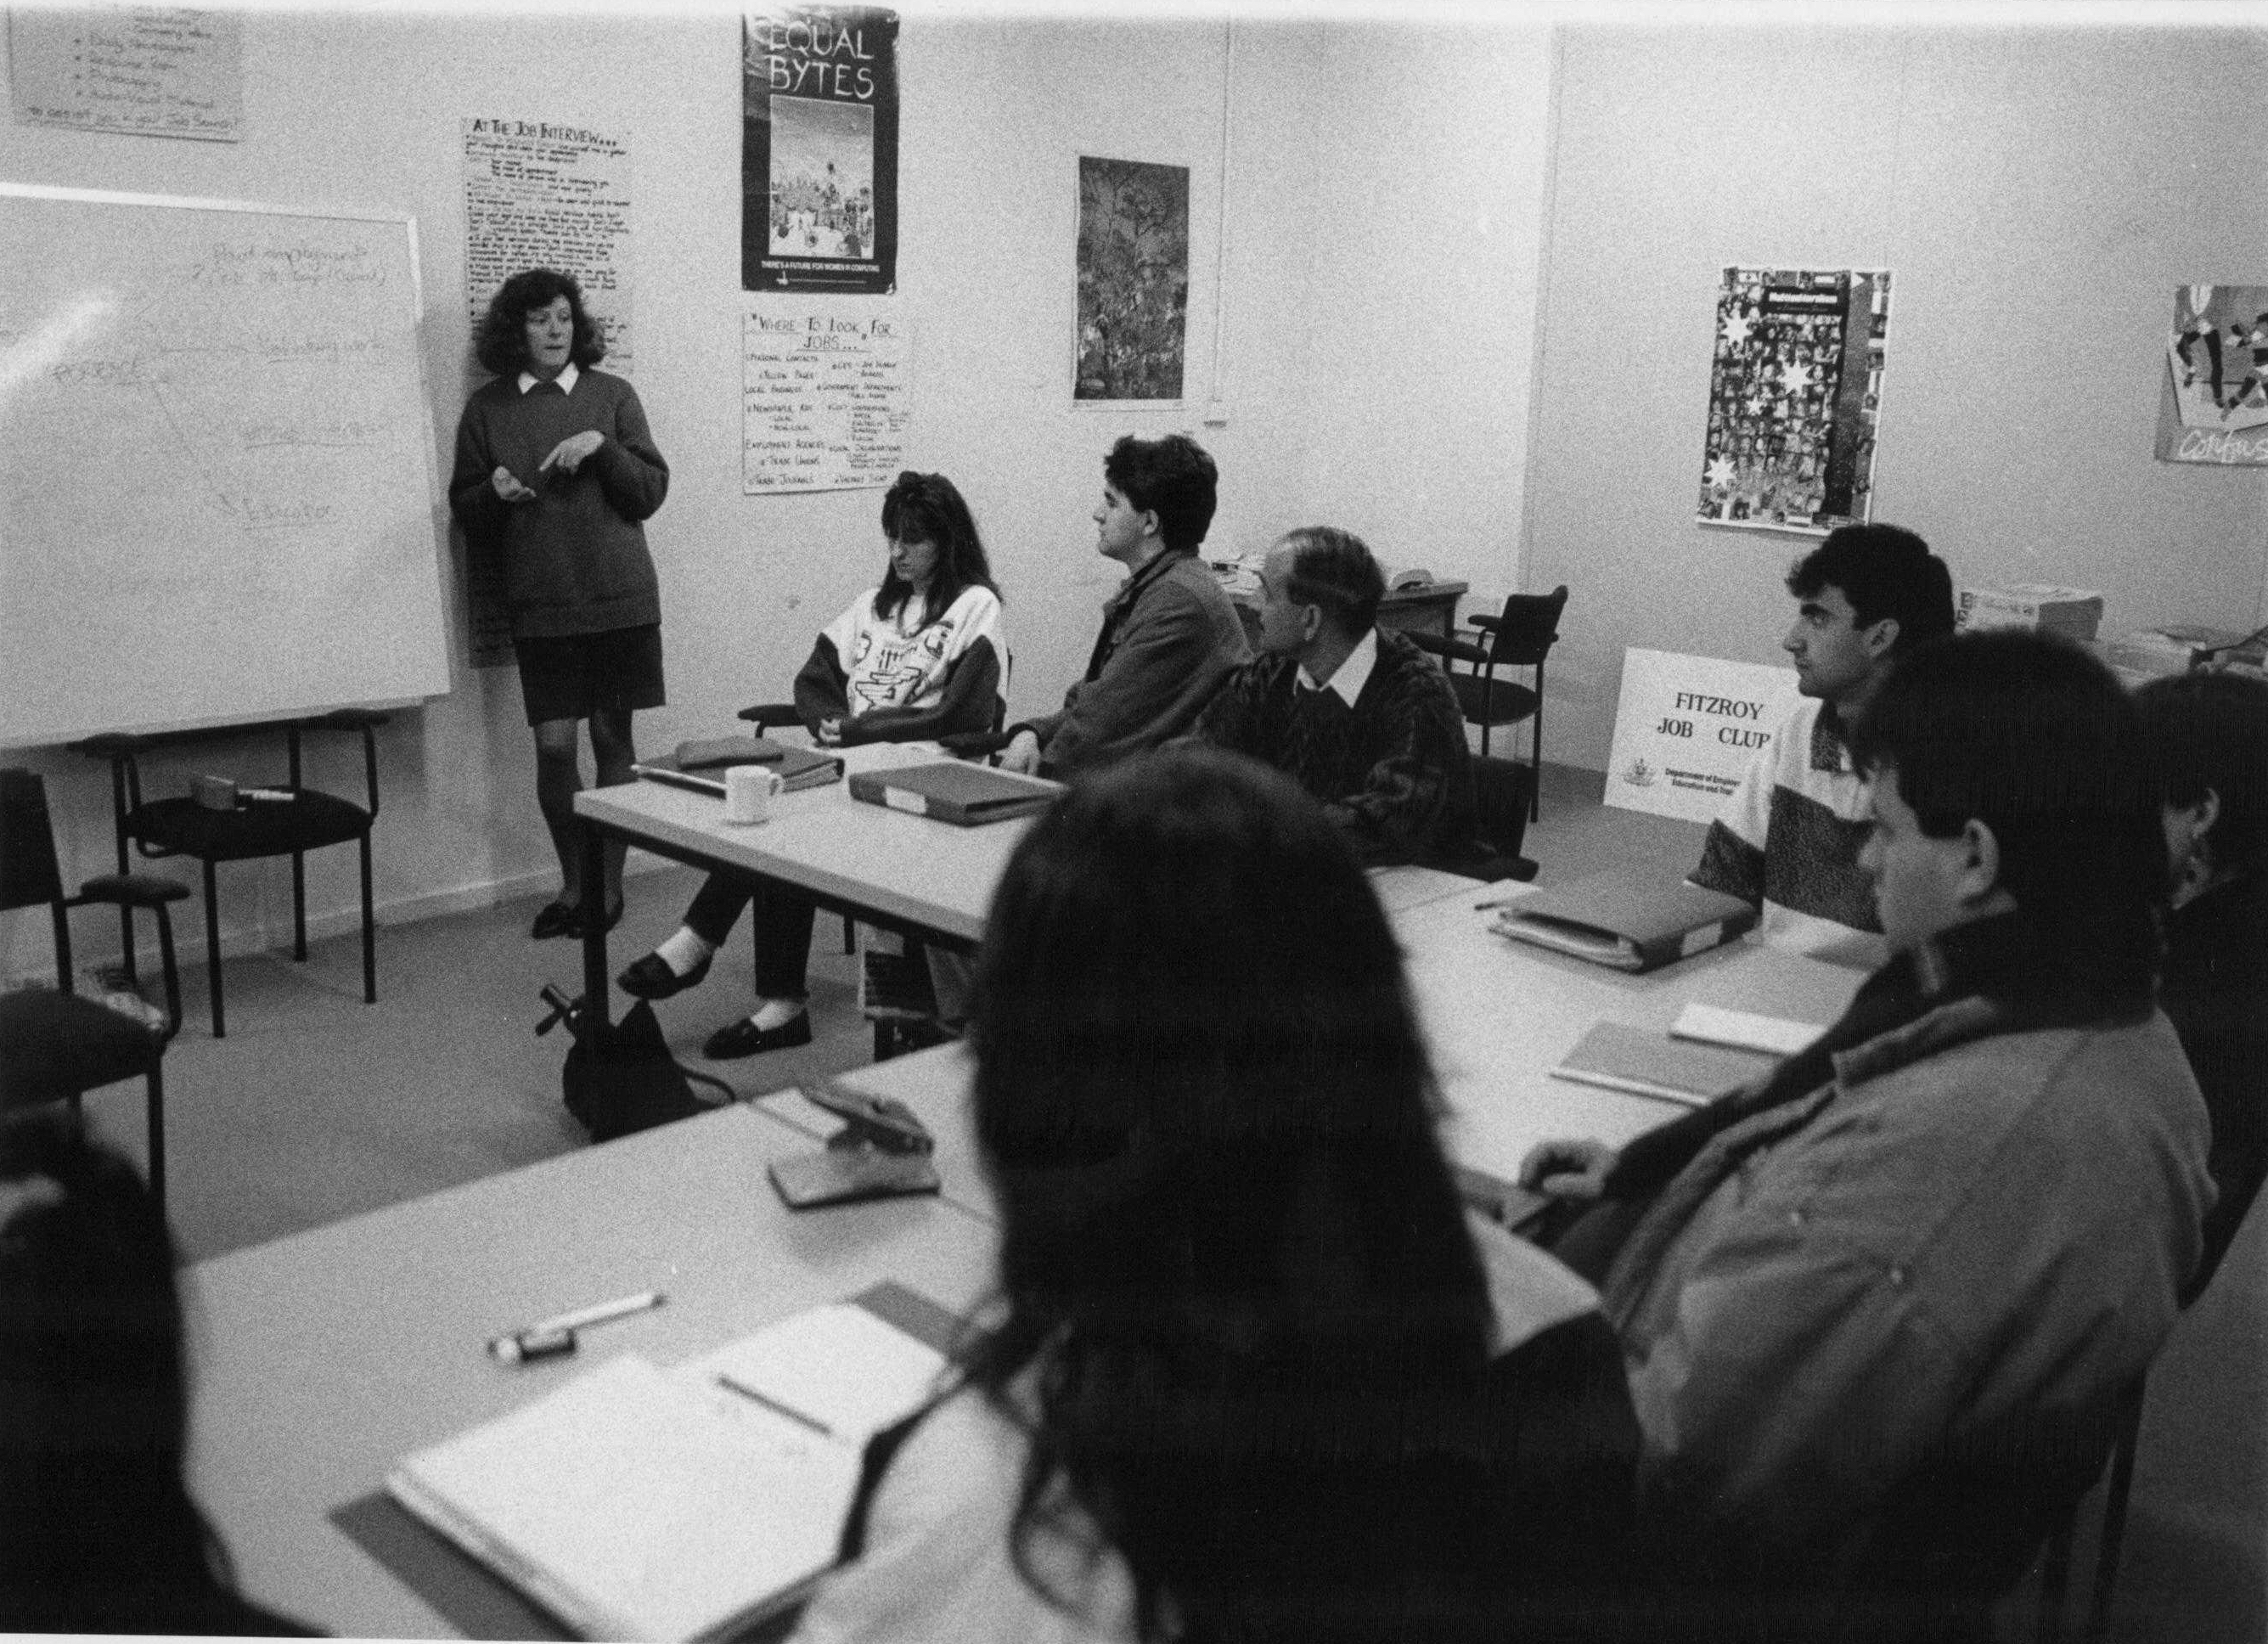 This is a black and white photo of an employment officer teaching job seekers. There are about 10 people listening to the employment officer. She is standing in front of a whiteboard.